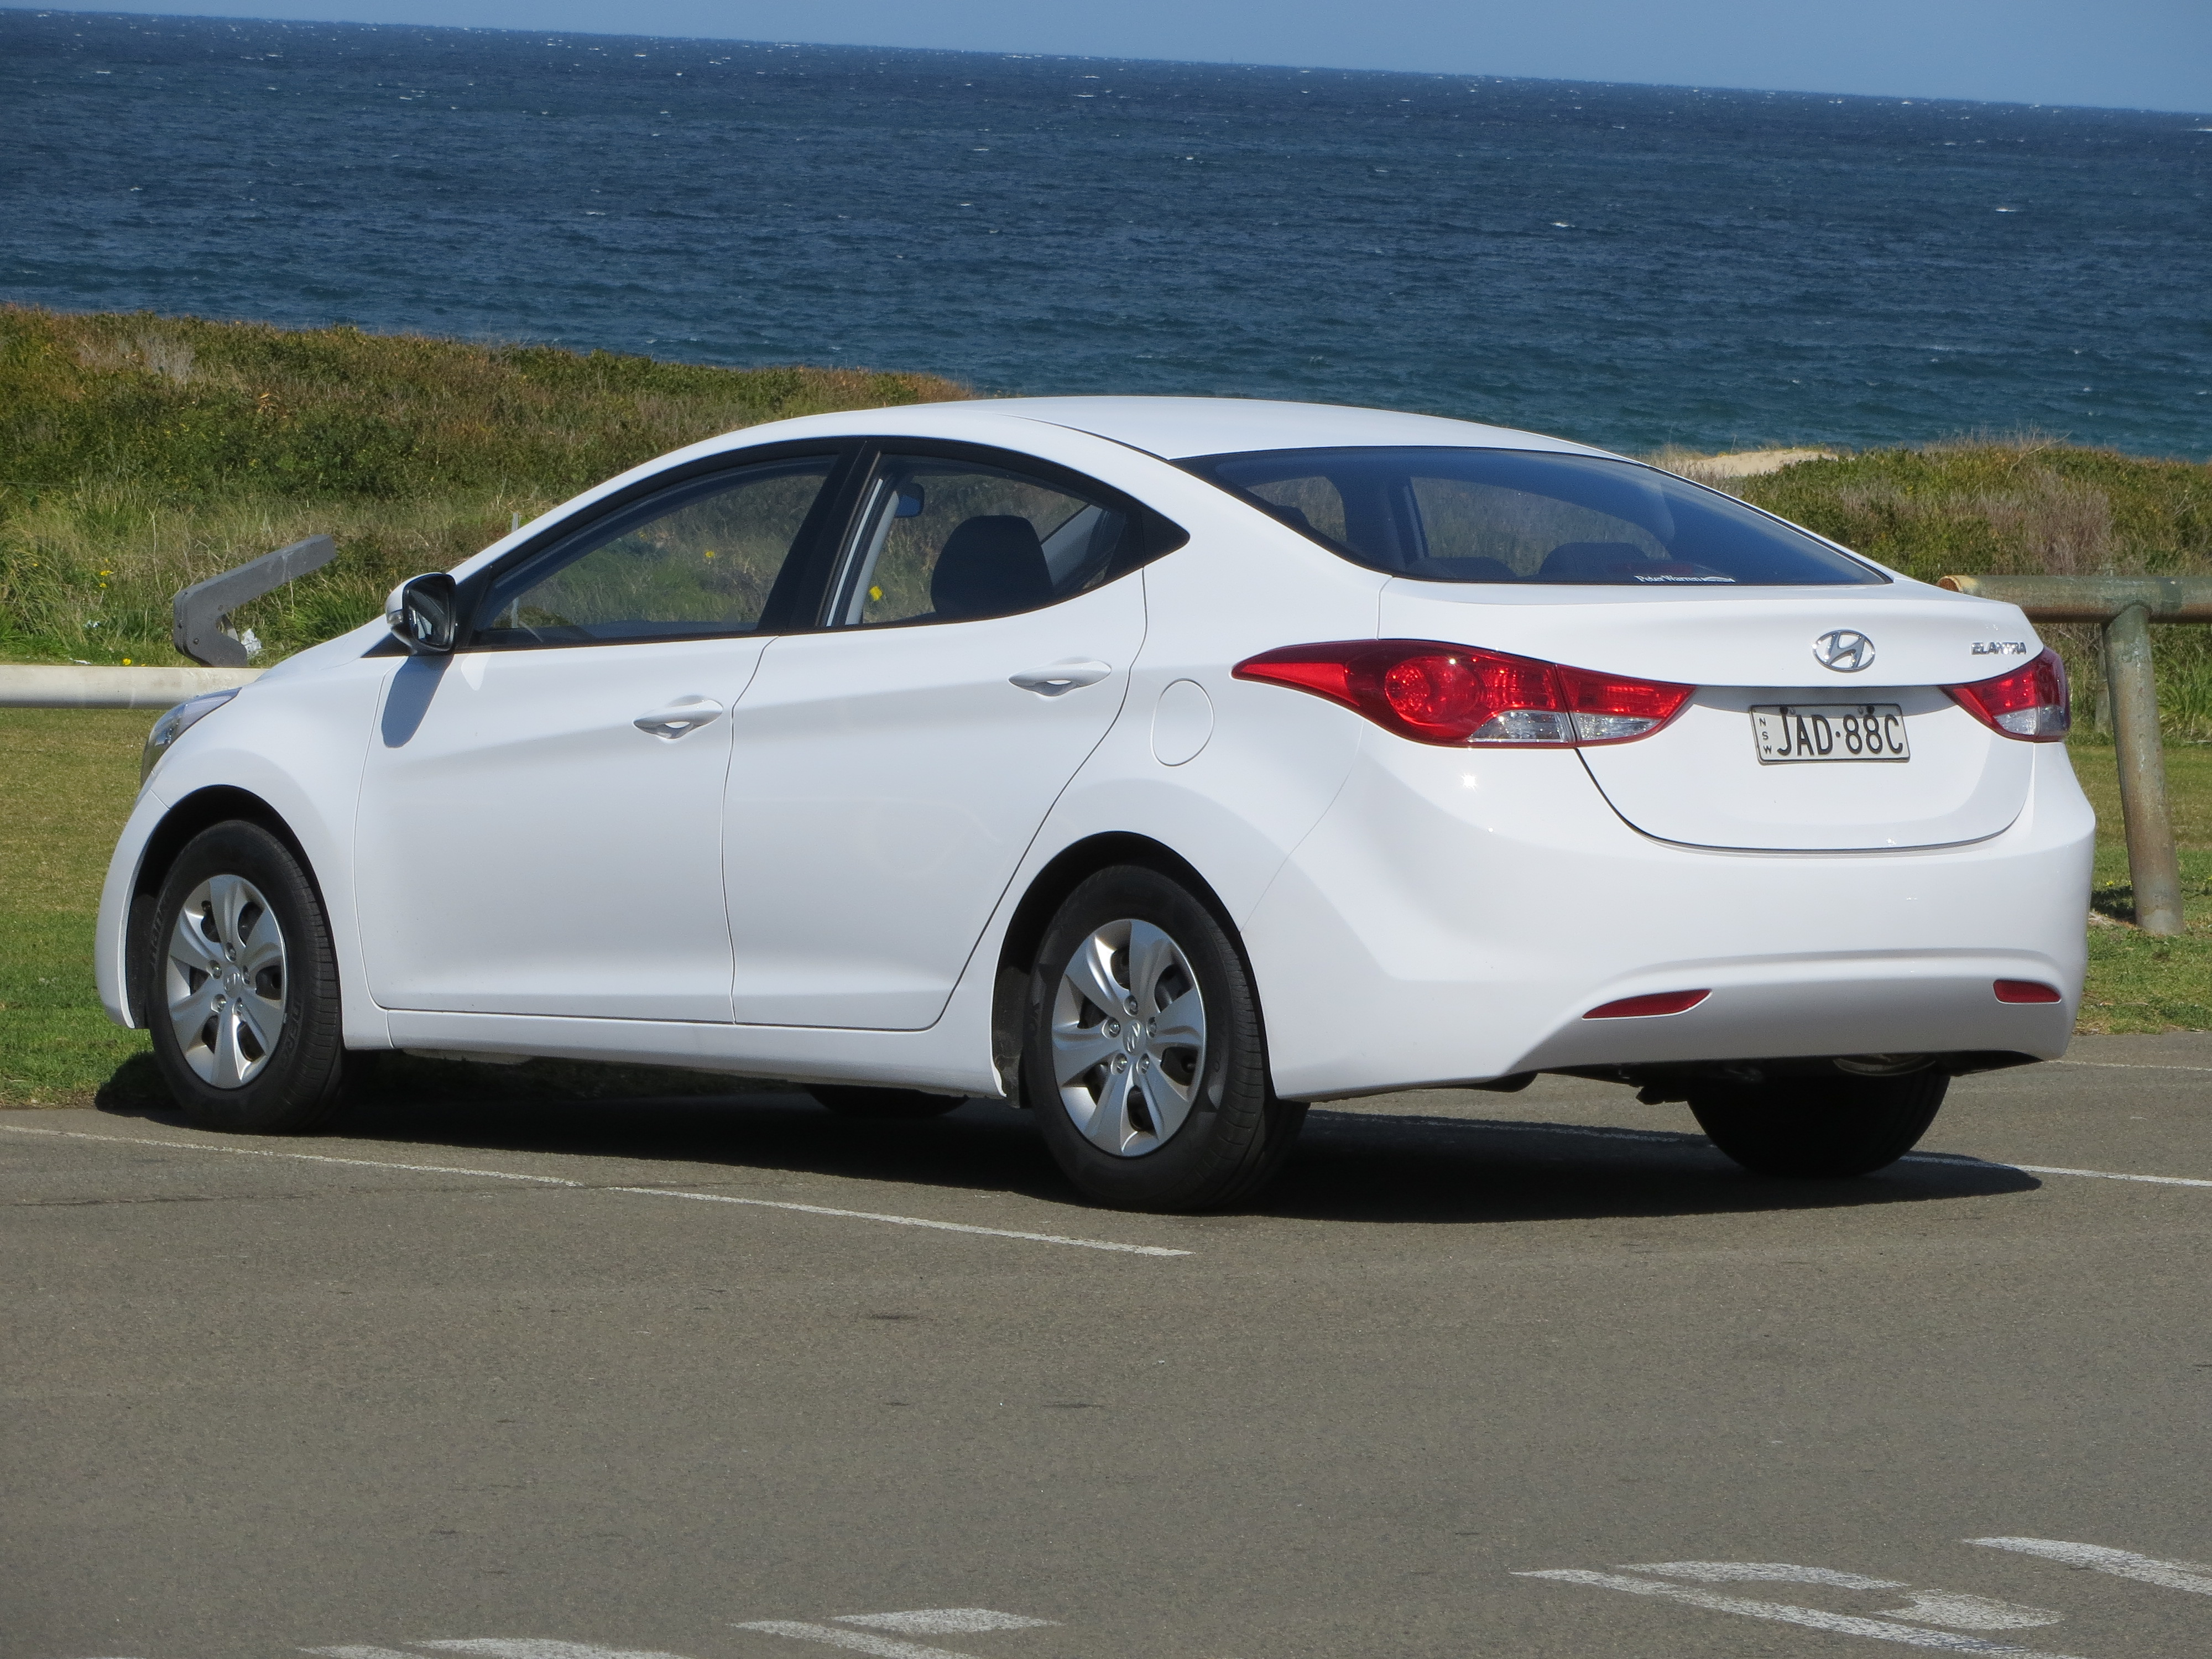 in elantra interior launched india hyundai